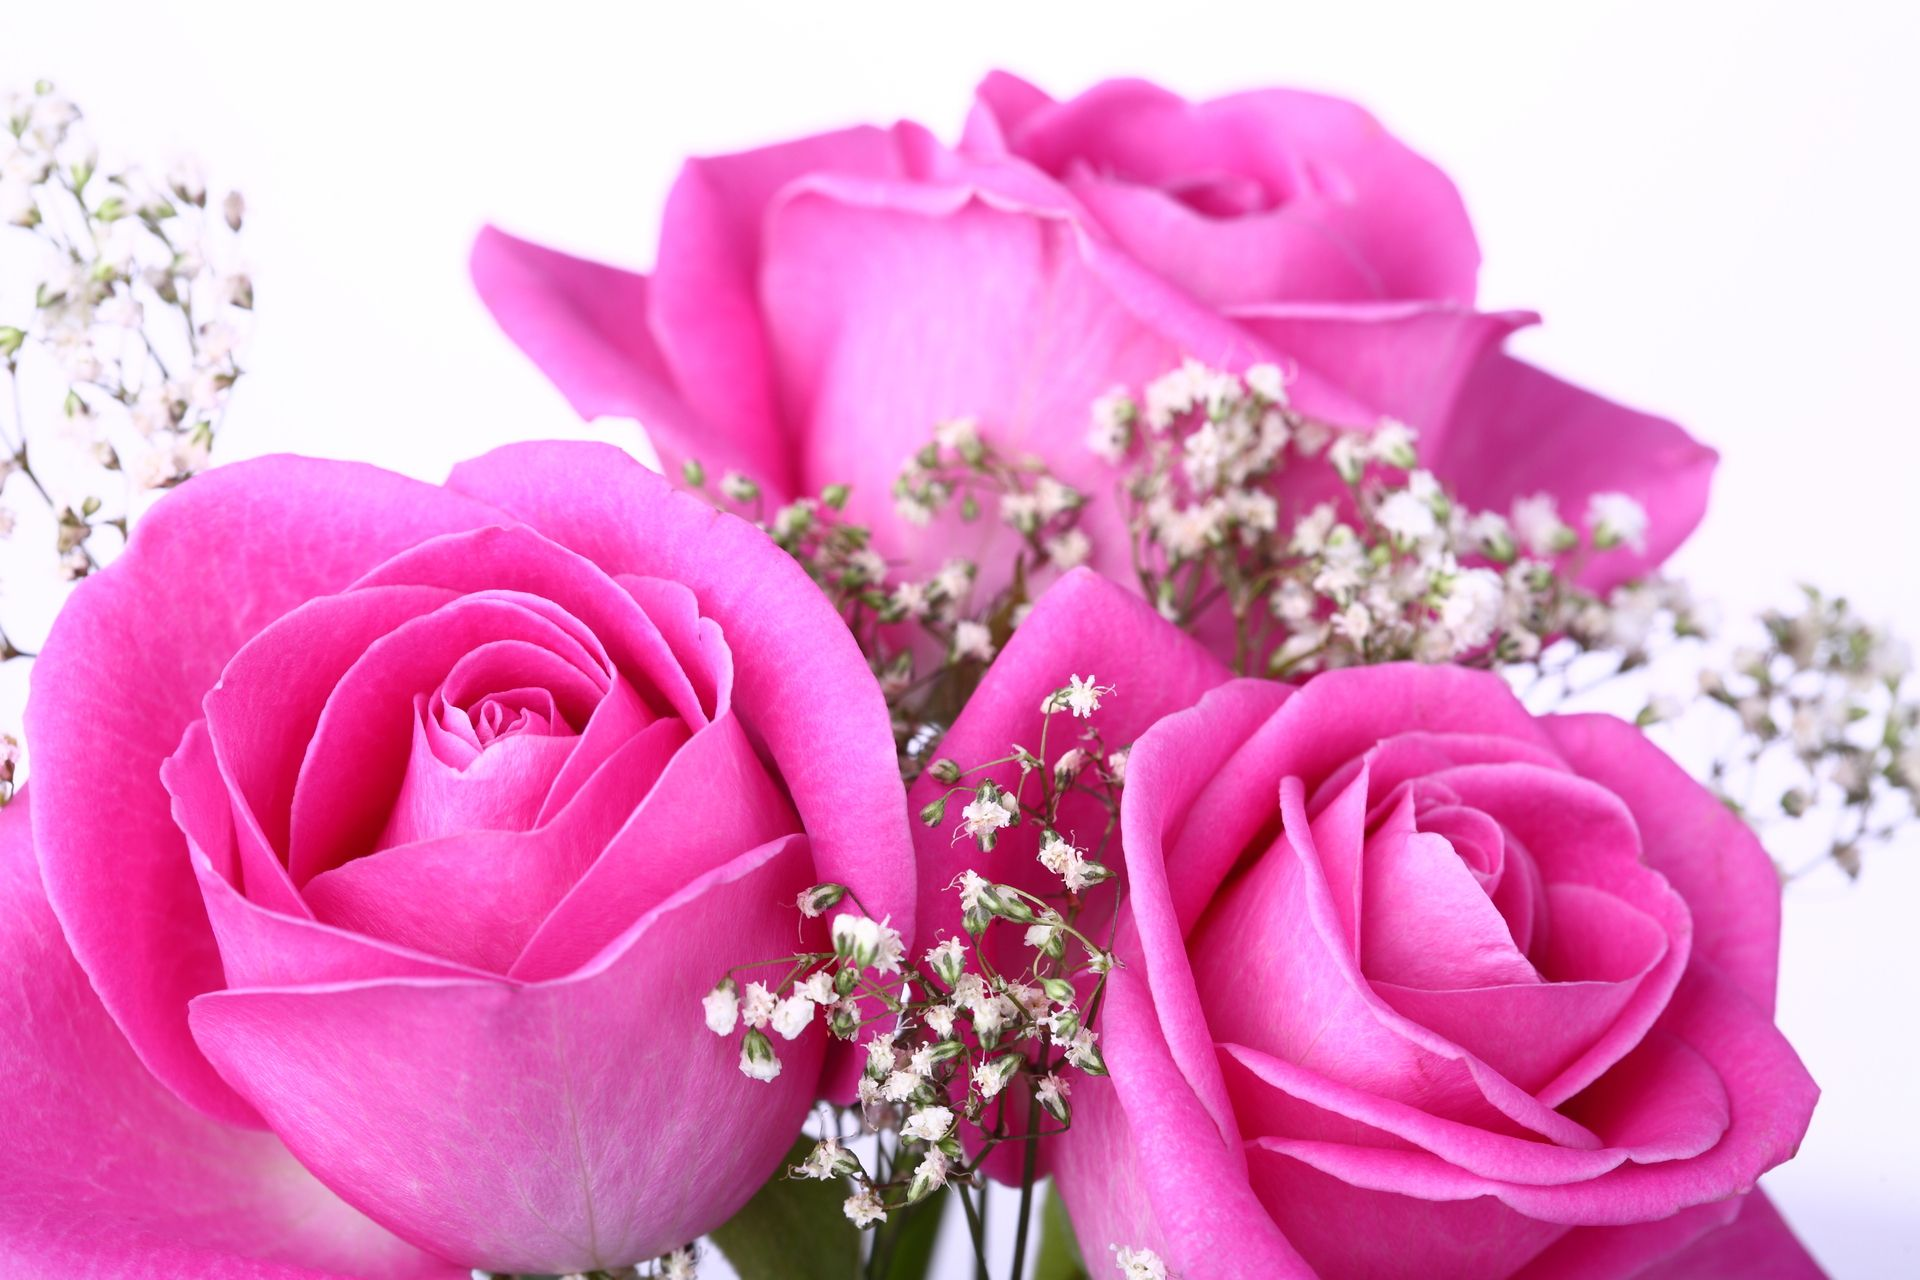 High Res Images For Mobile Screens Pink Flower Pic